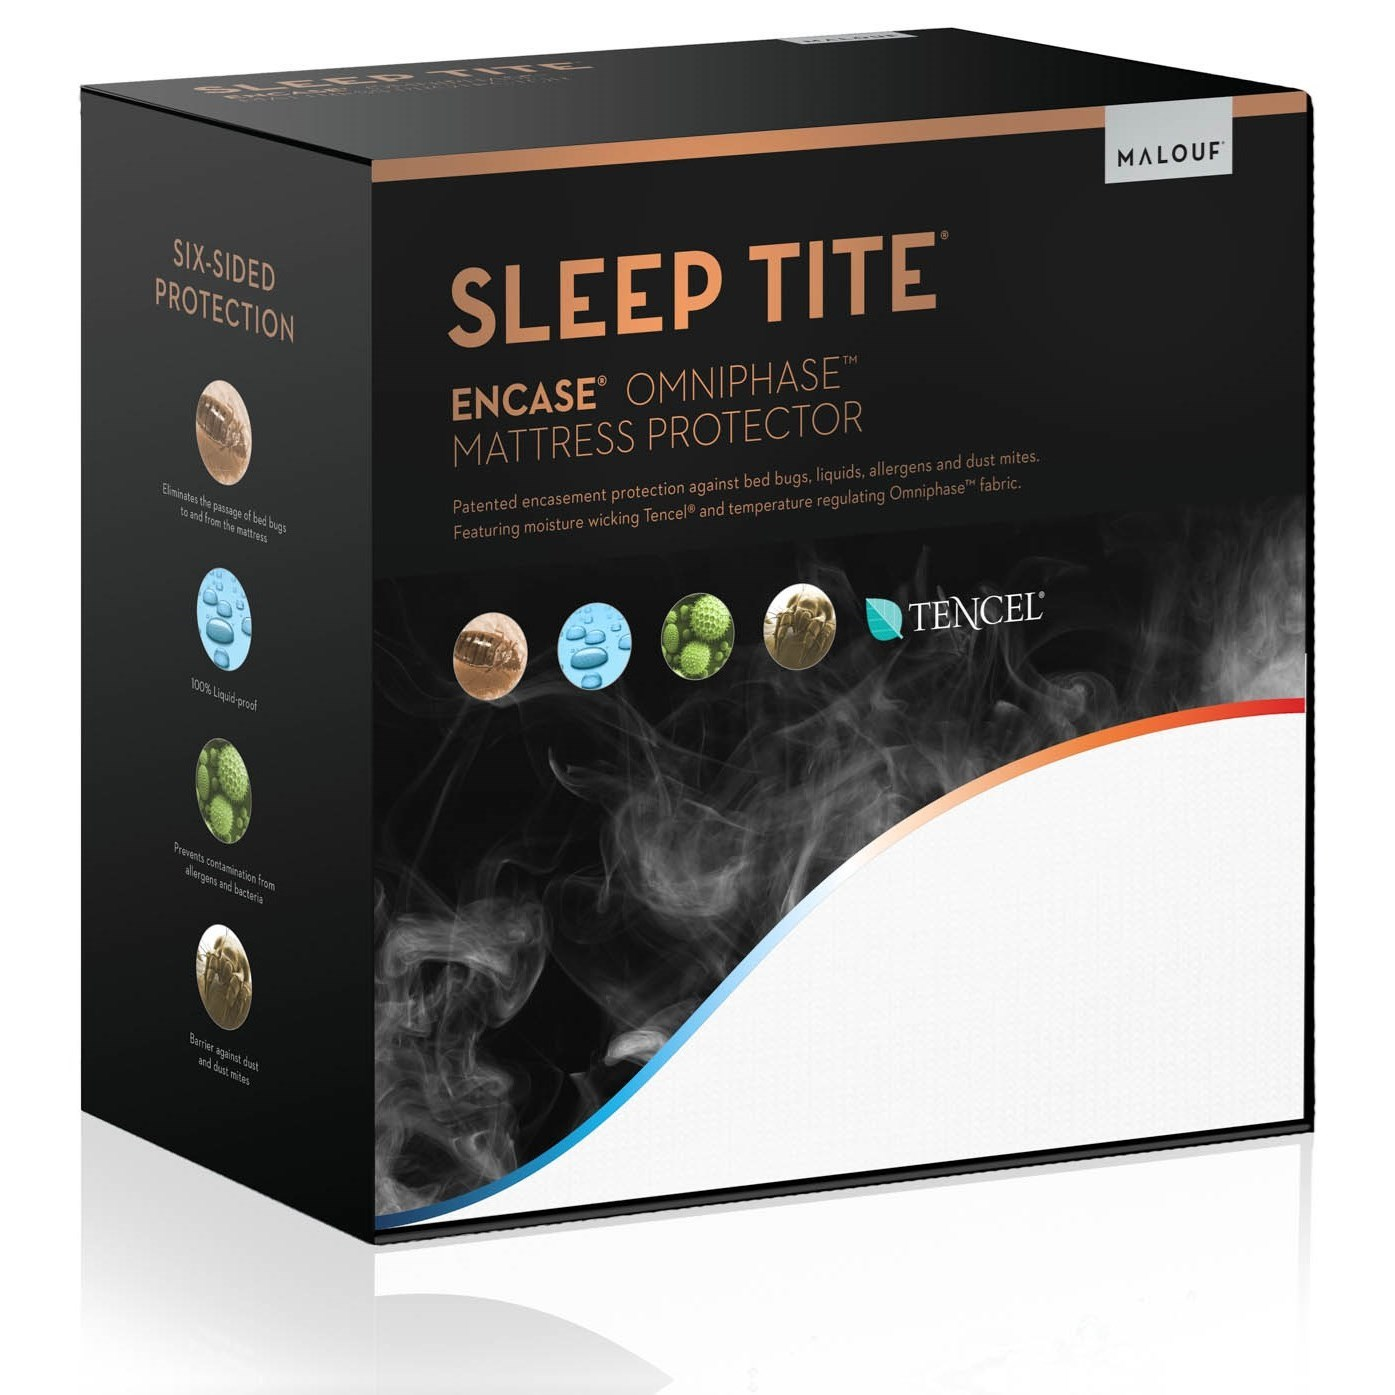 Twin Encase Omniphase Mattress Protector